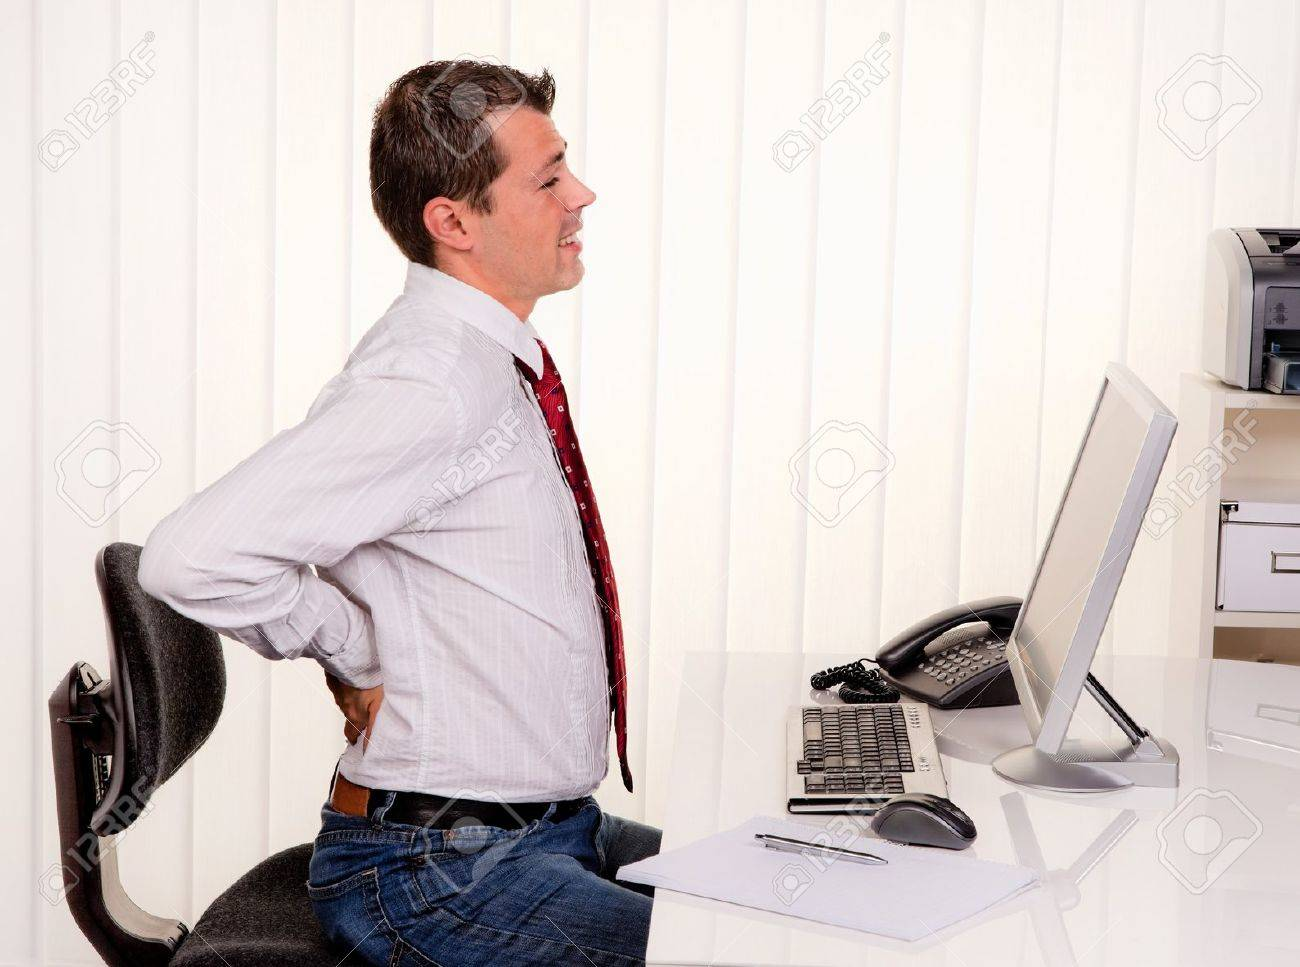 young man in office with computer and back pain Stock Photo - 12080673